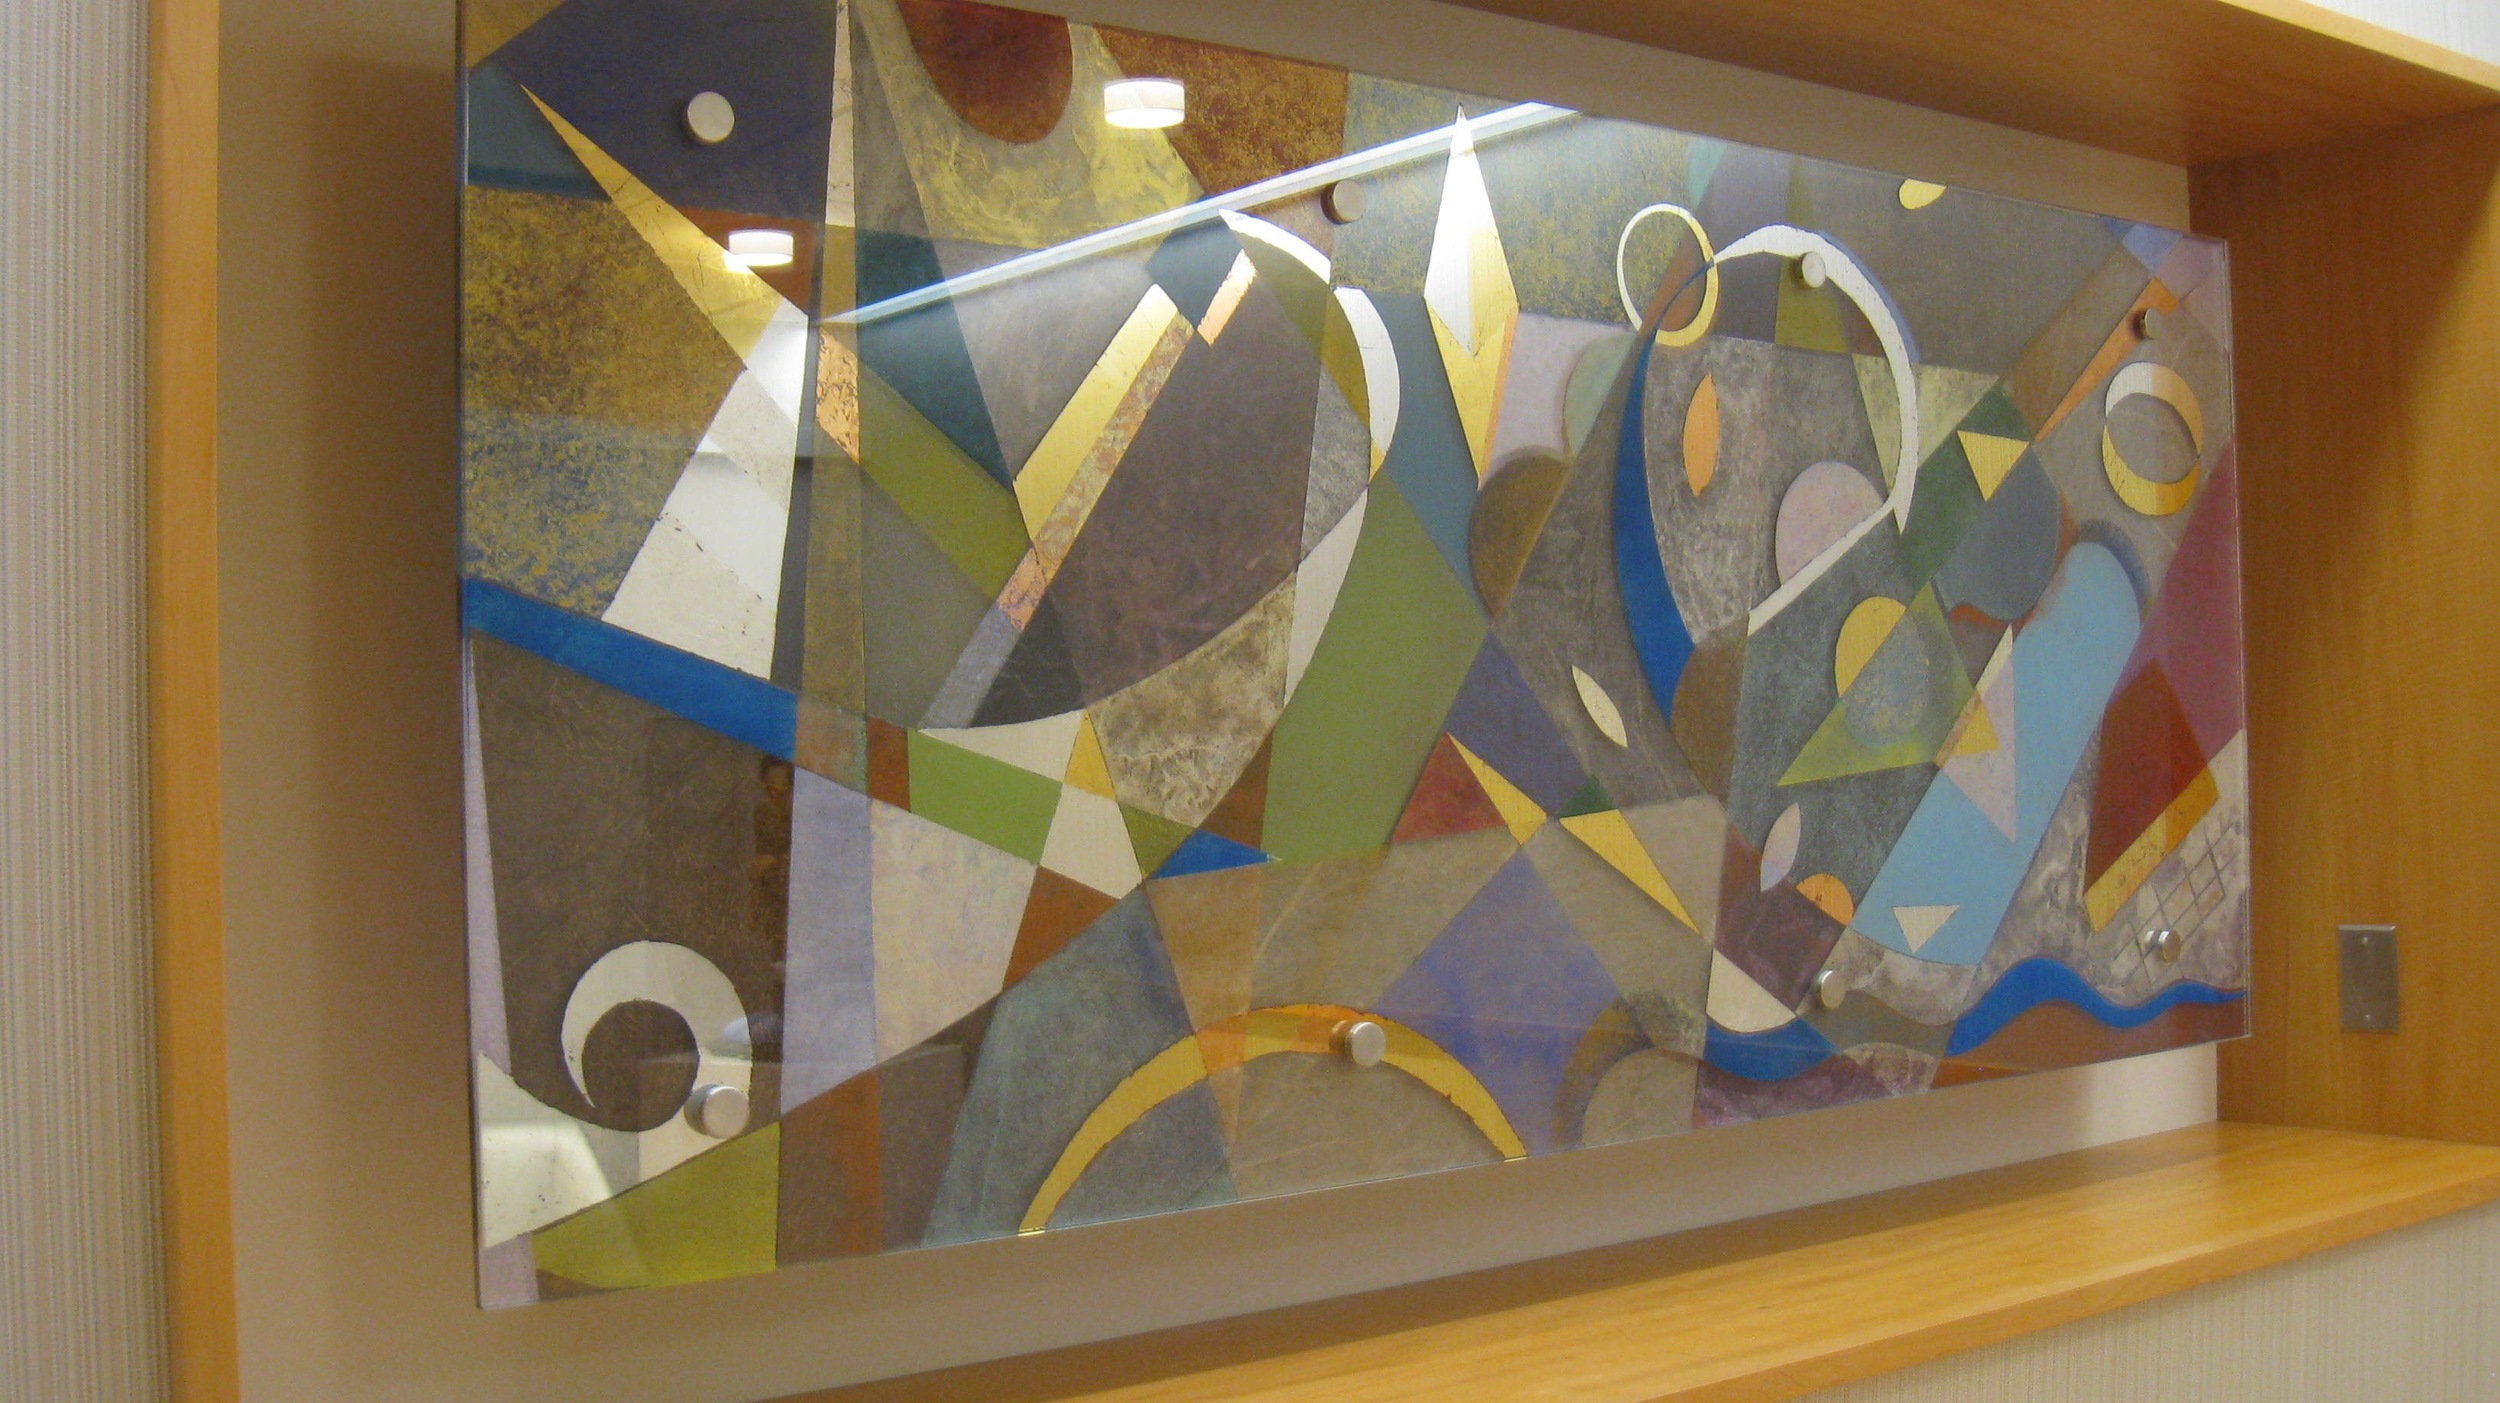 Art Glass Mural, Memorial Sloan Kettering